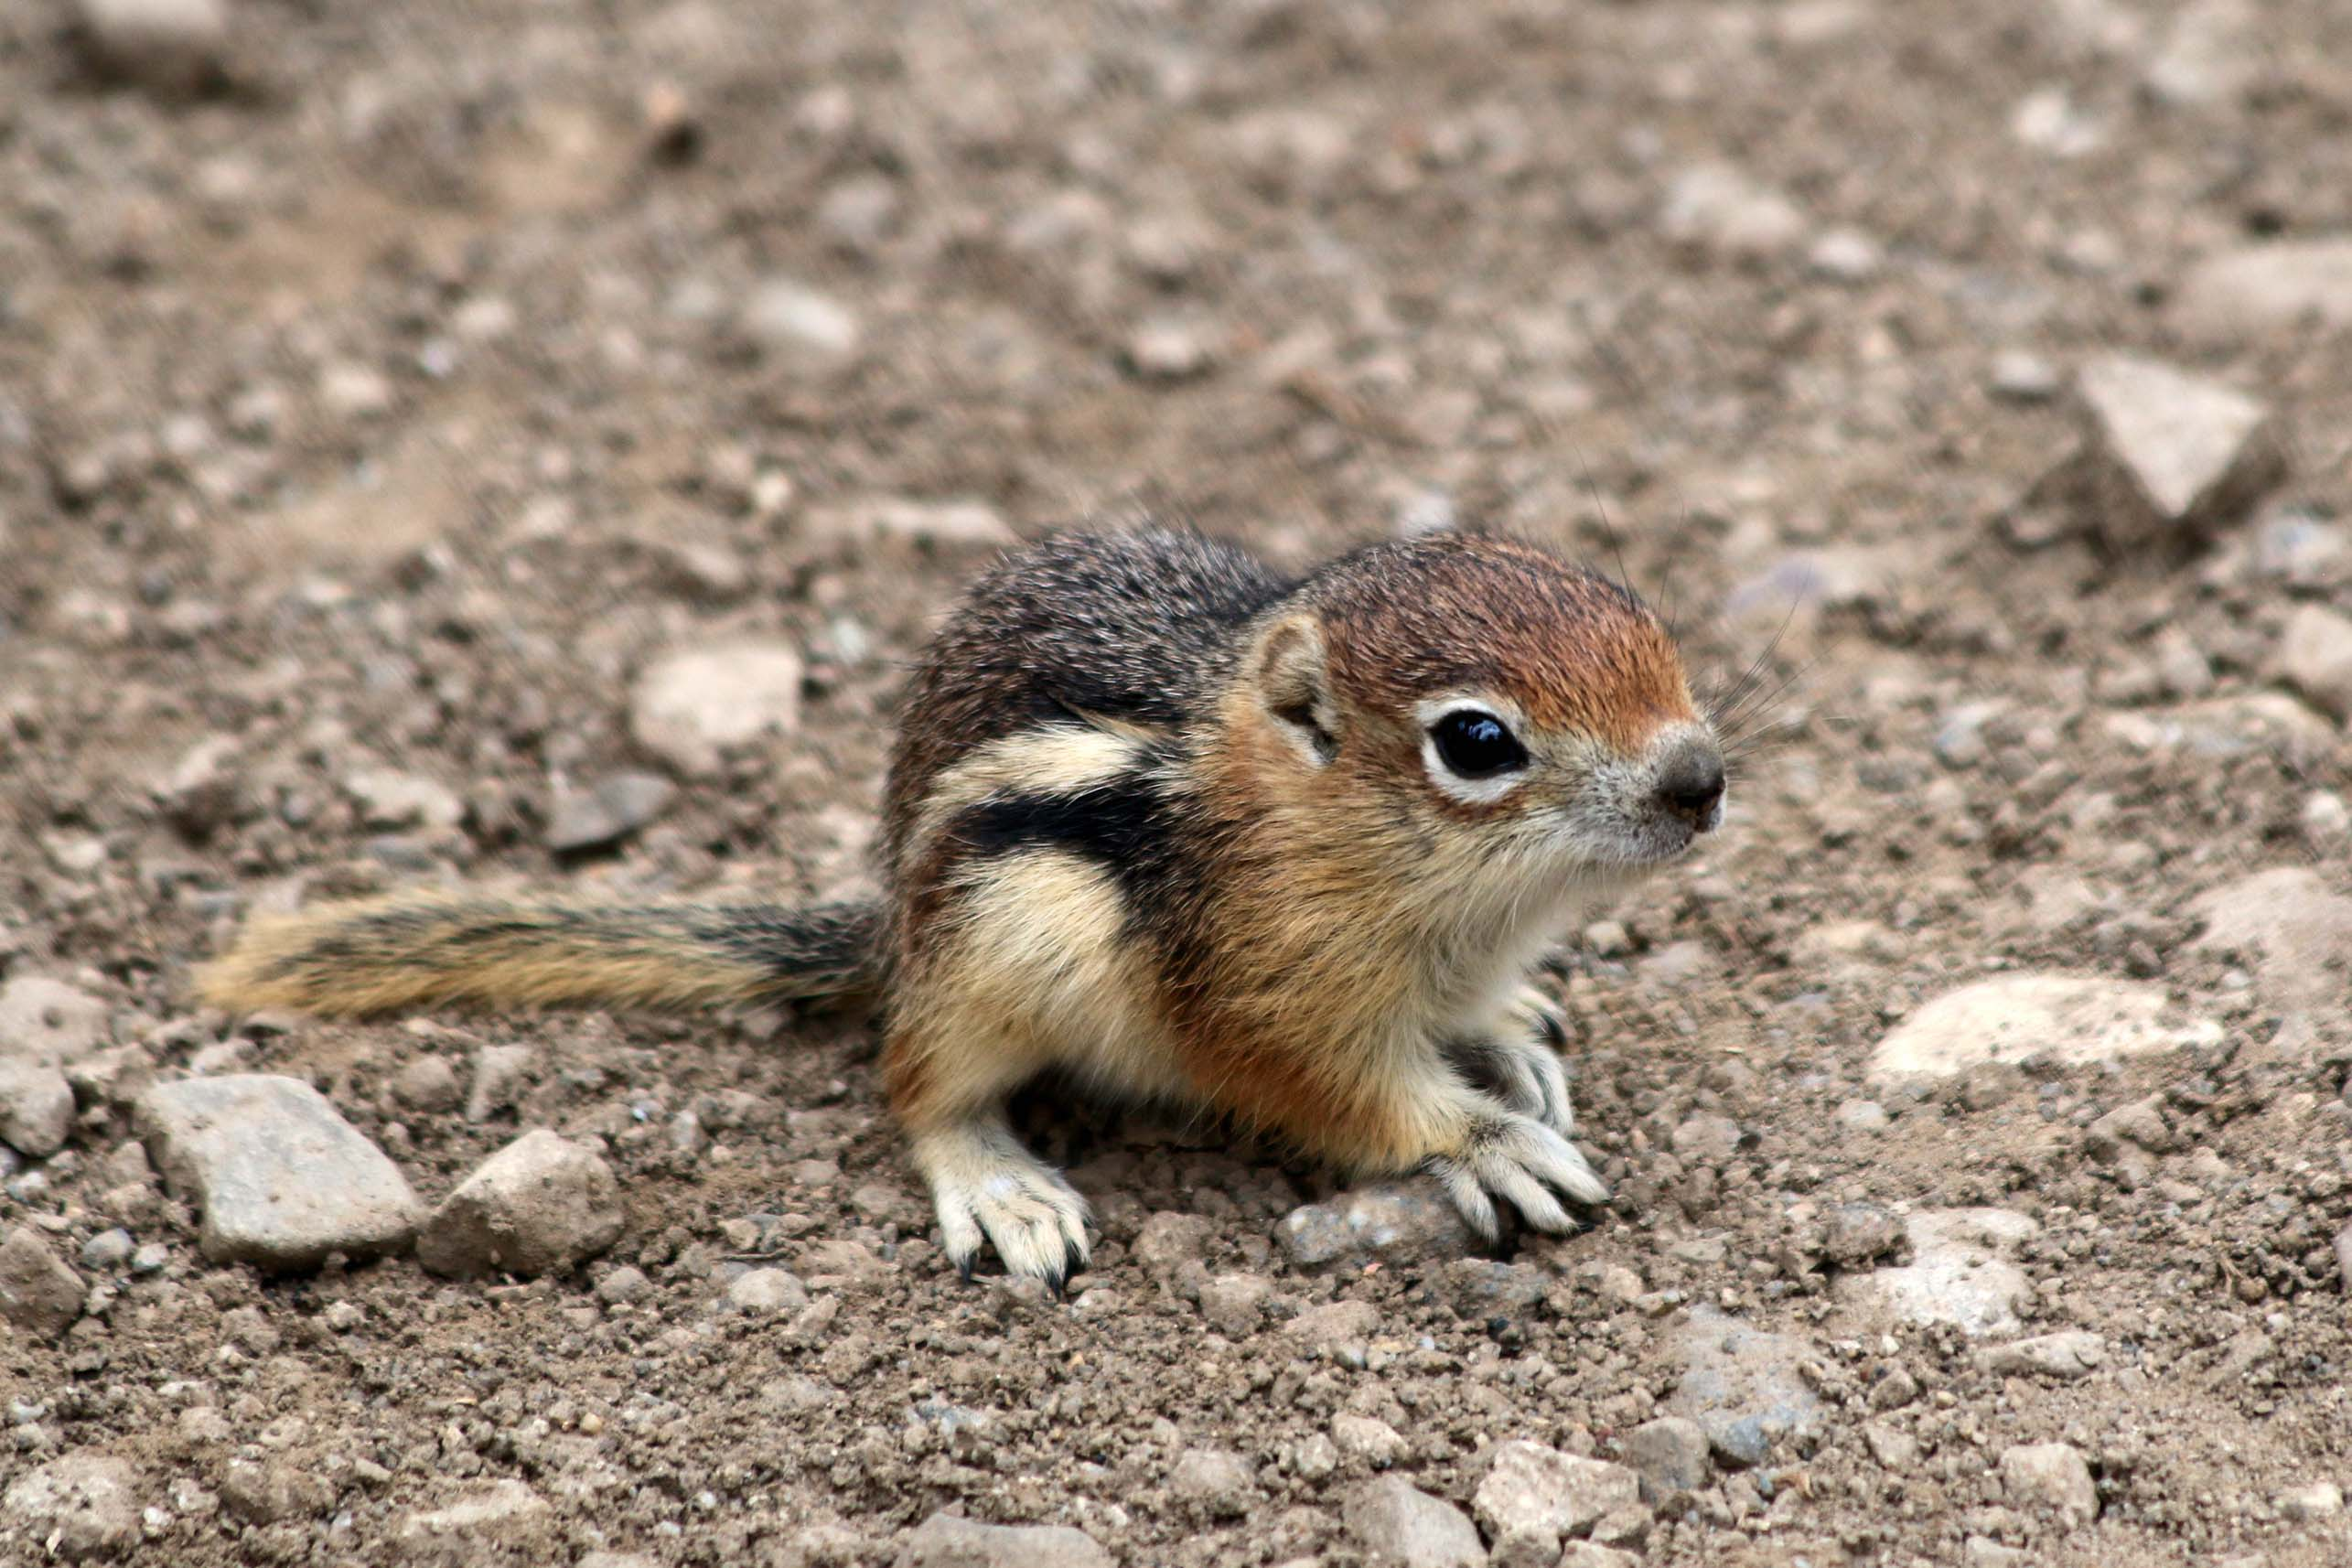 Baby ground squirrel at Rocky Mountain Biological Laboratory. [Photo] Jimmy Lee